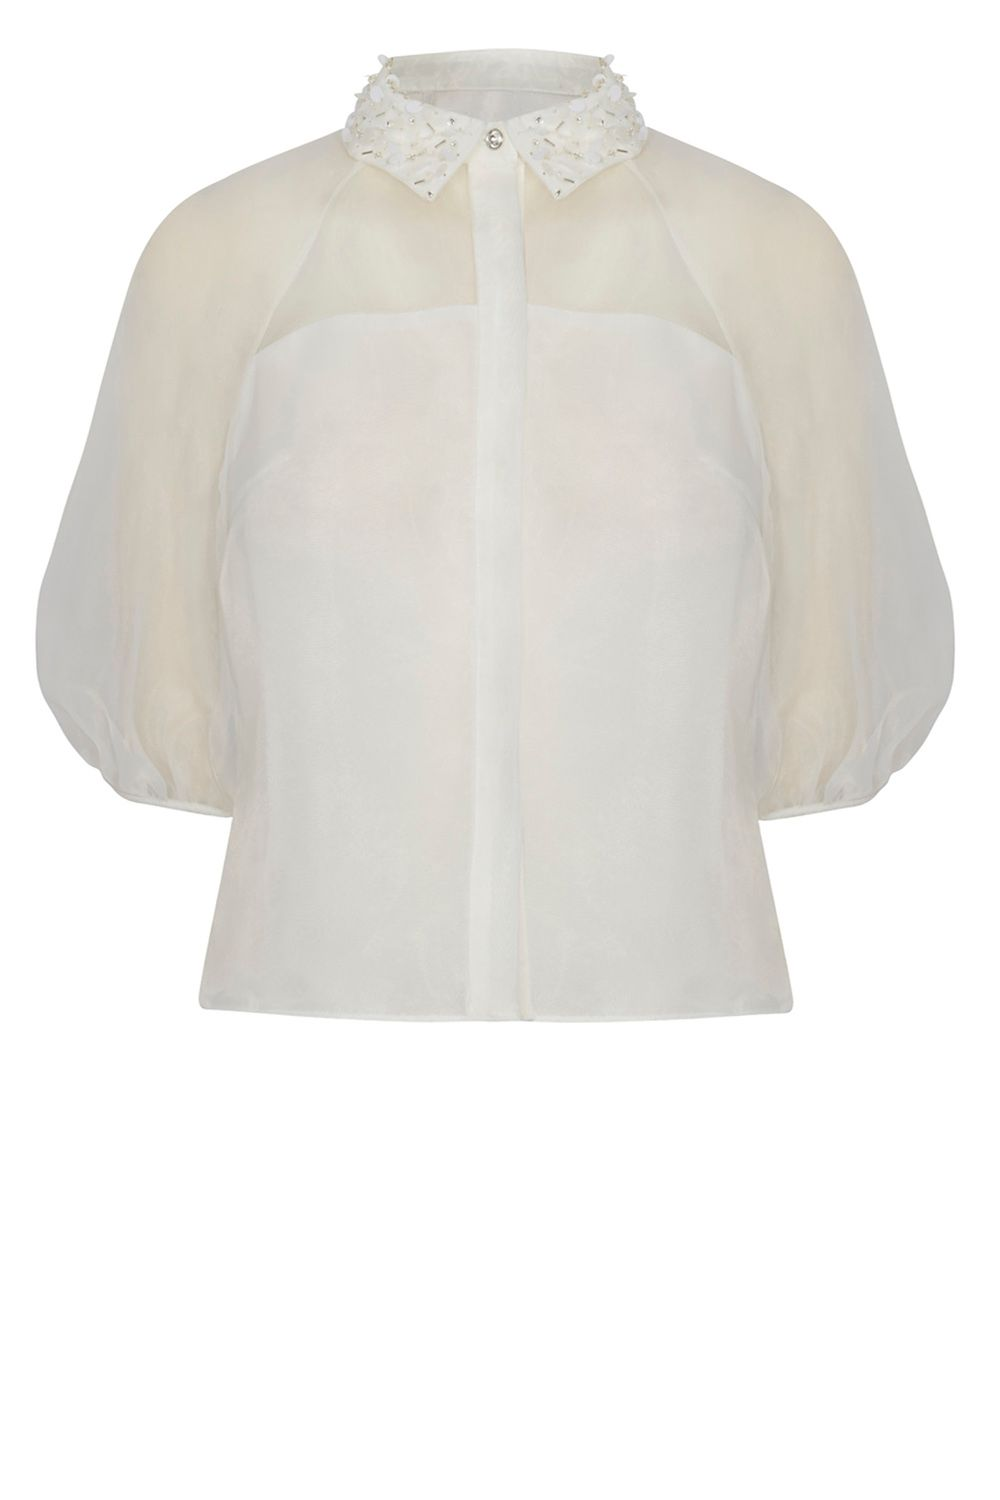 Coast Joy Embellished Blouse, White